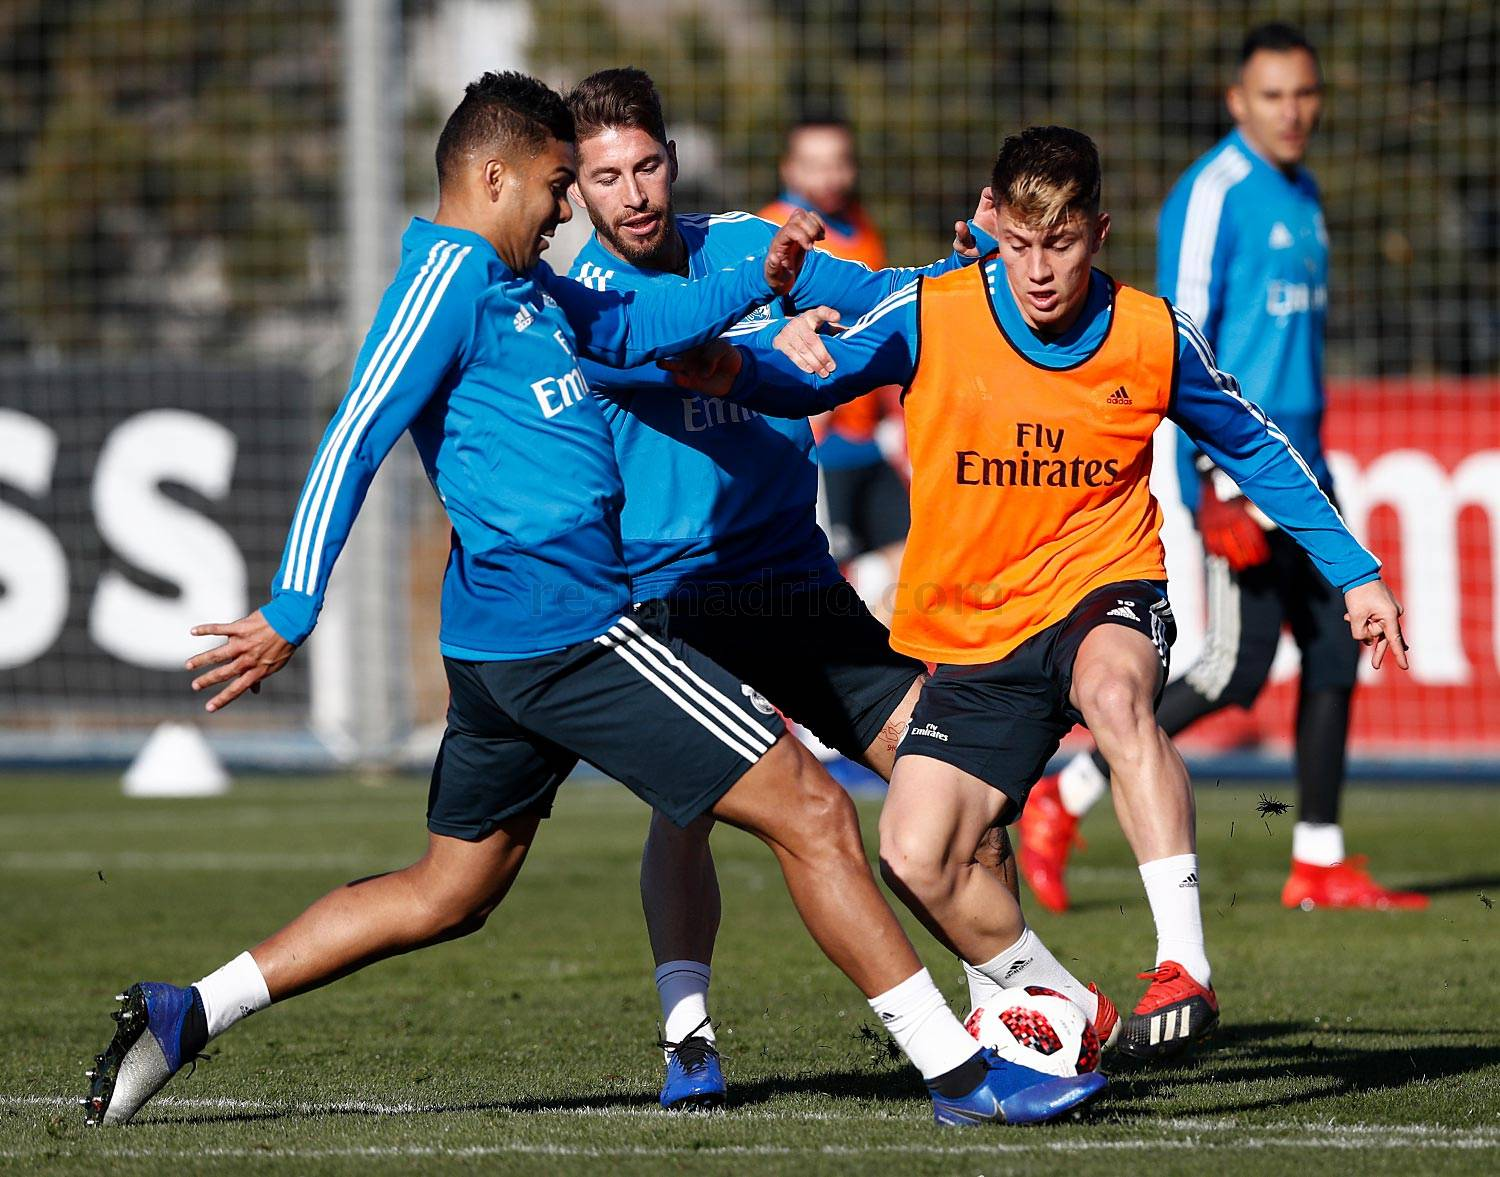 Real Madrid - Entrenamiento del Real Madrid - 08-01-2019